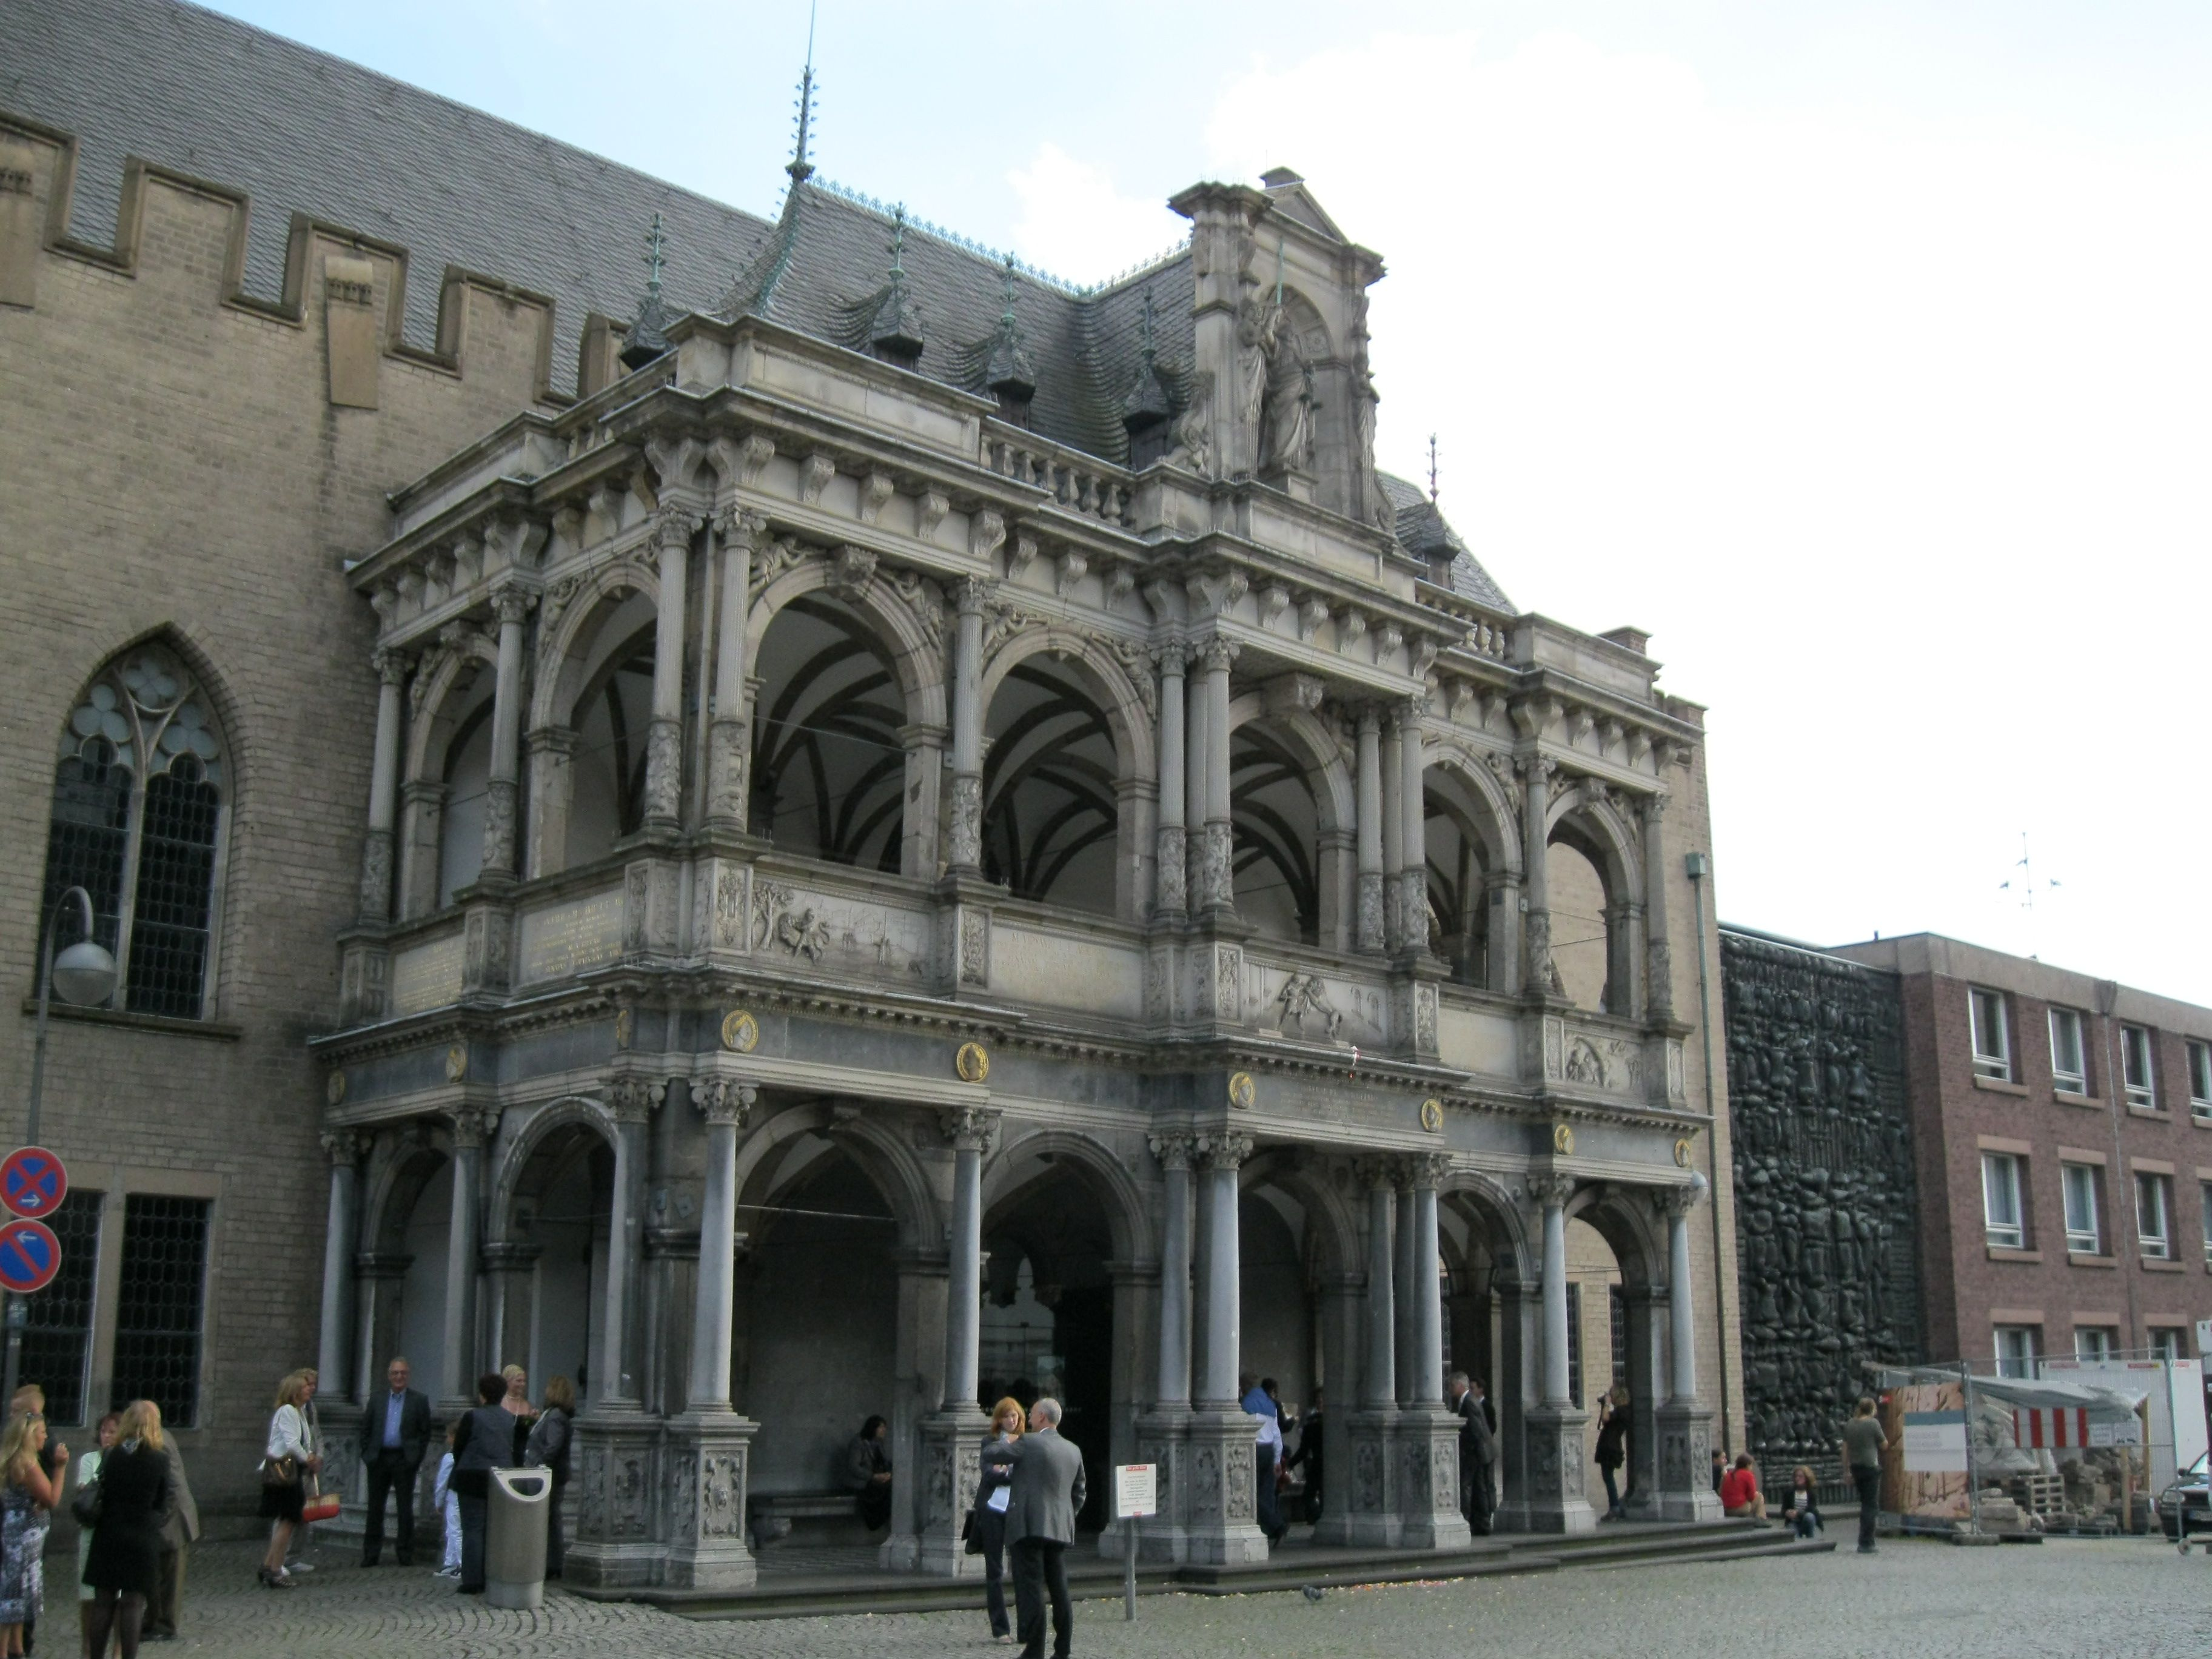 The City Hall German Kolner Rathaus Is A Historical Building In Cologne Western Germany It Houses Part Of The Ci Historic Buildings City Hall Architecture